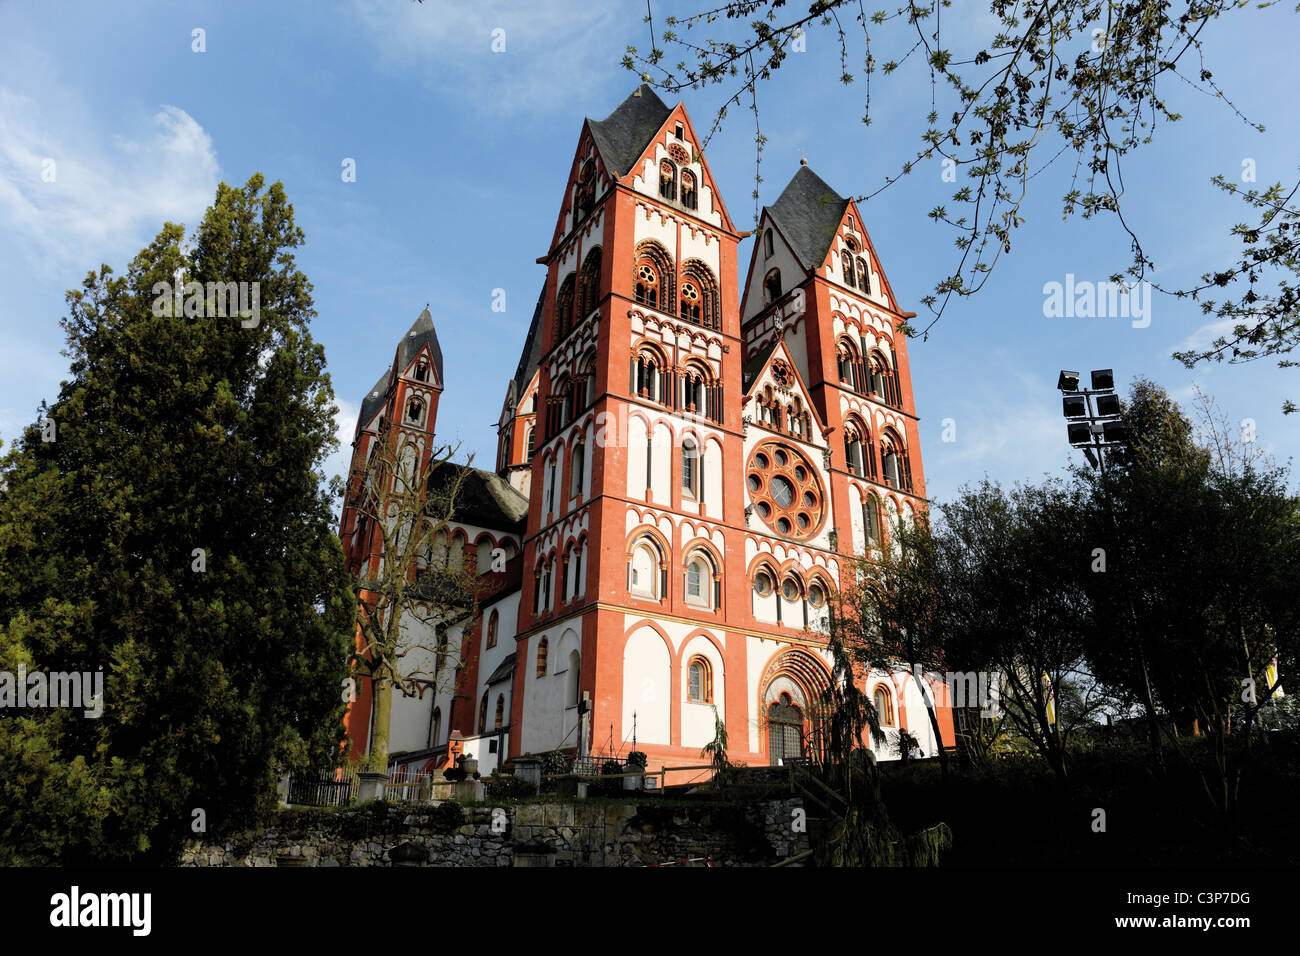 Germany, Hesse, Limburg Cathedral low angle view - Stock Image